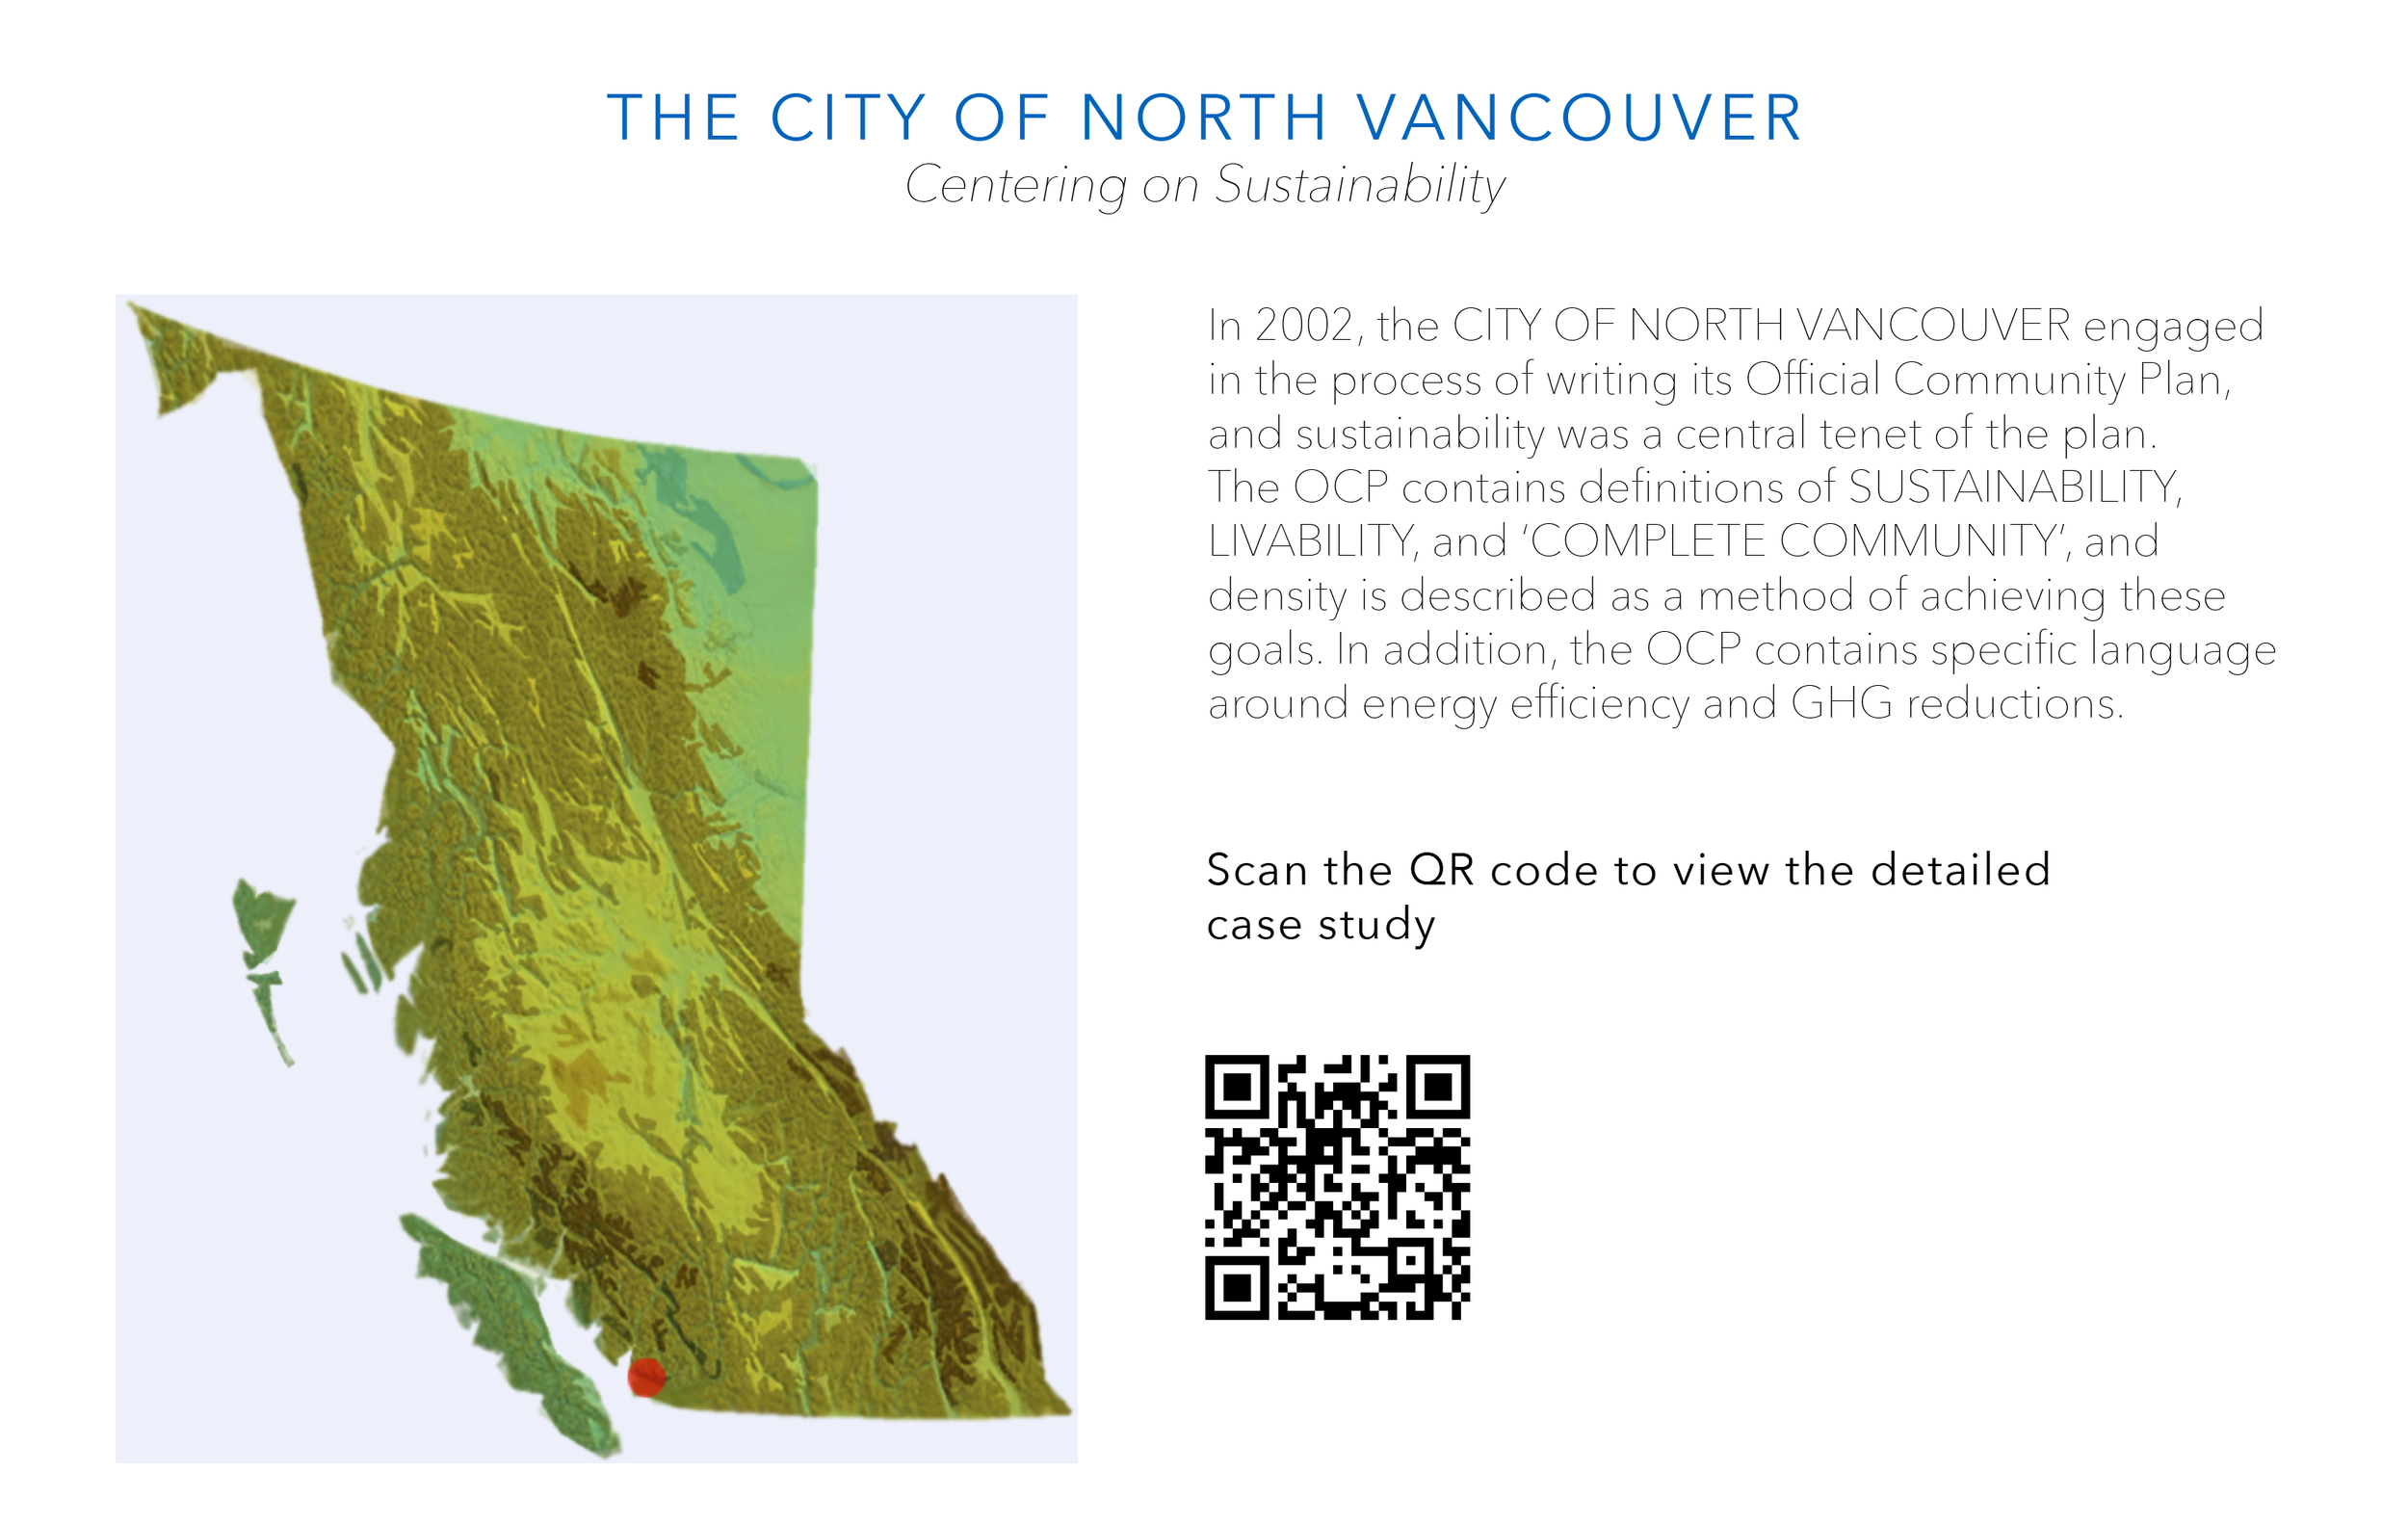 NorthVancouver.png